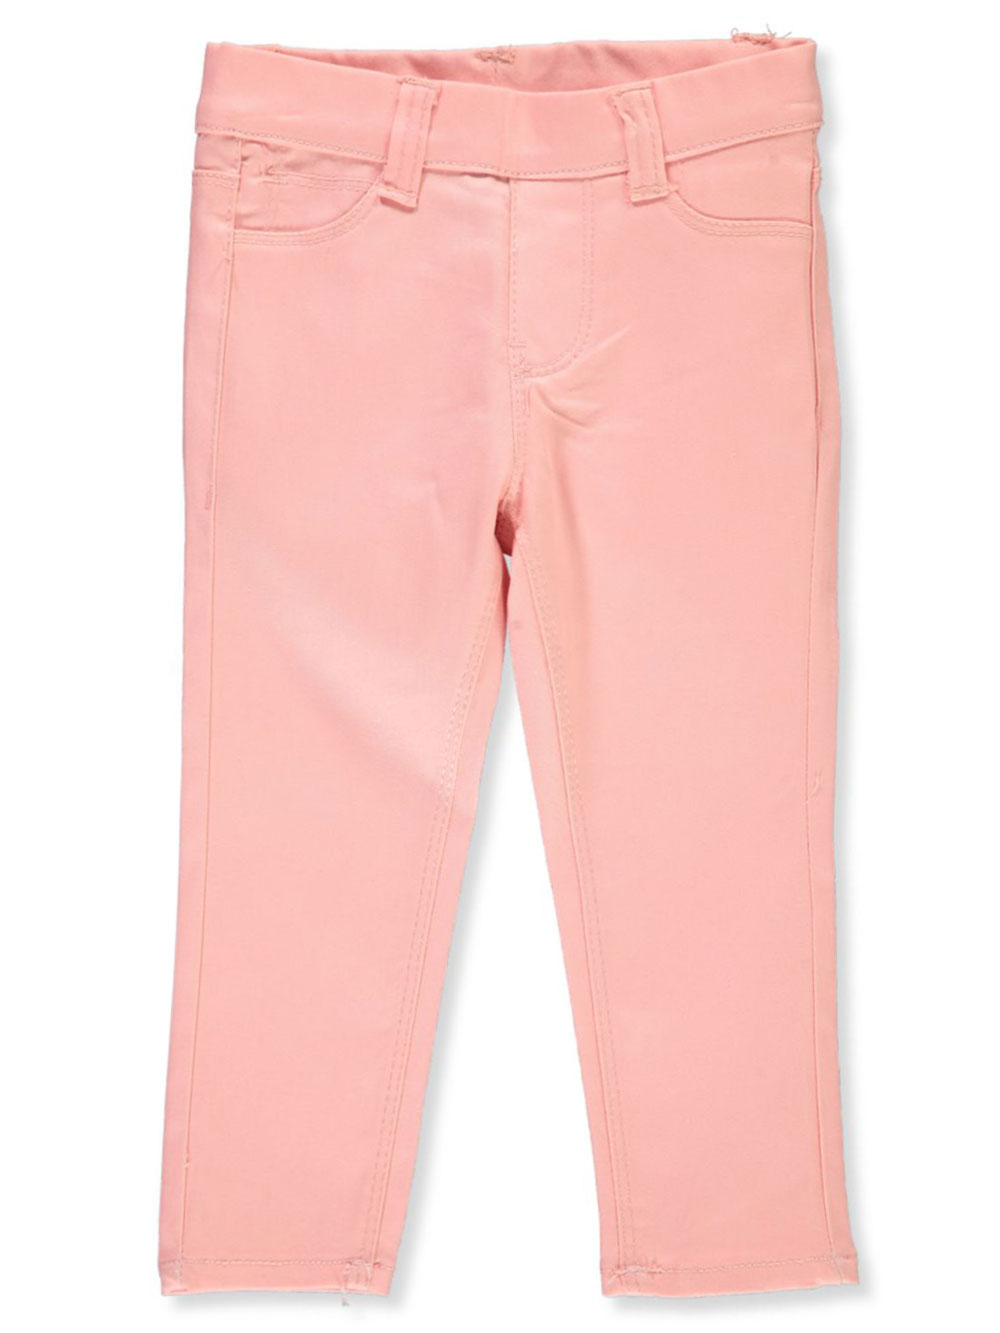 Girls Blush Pants